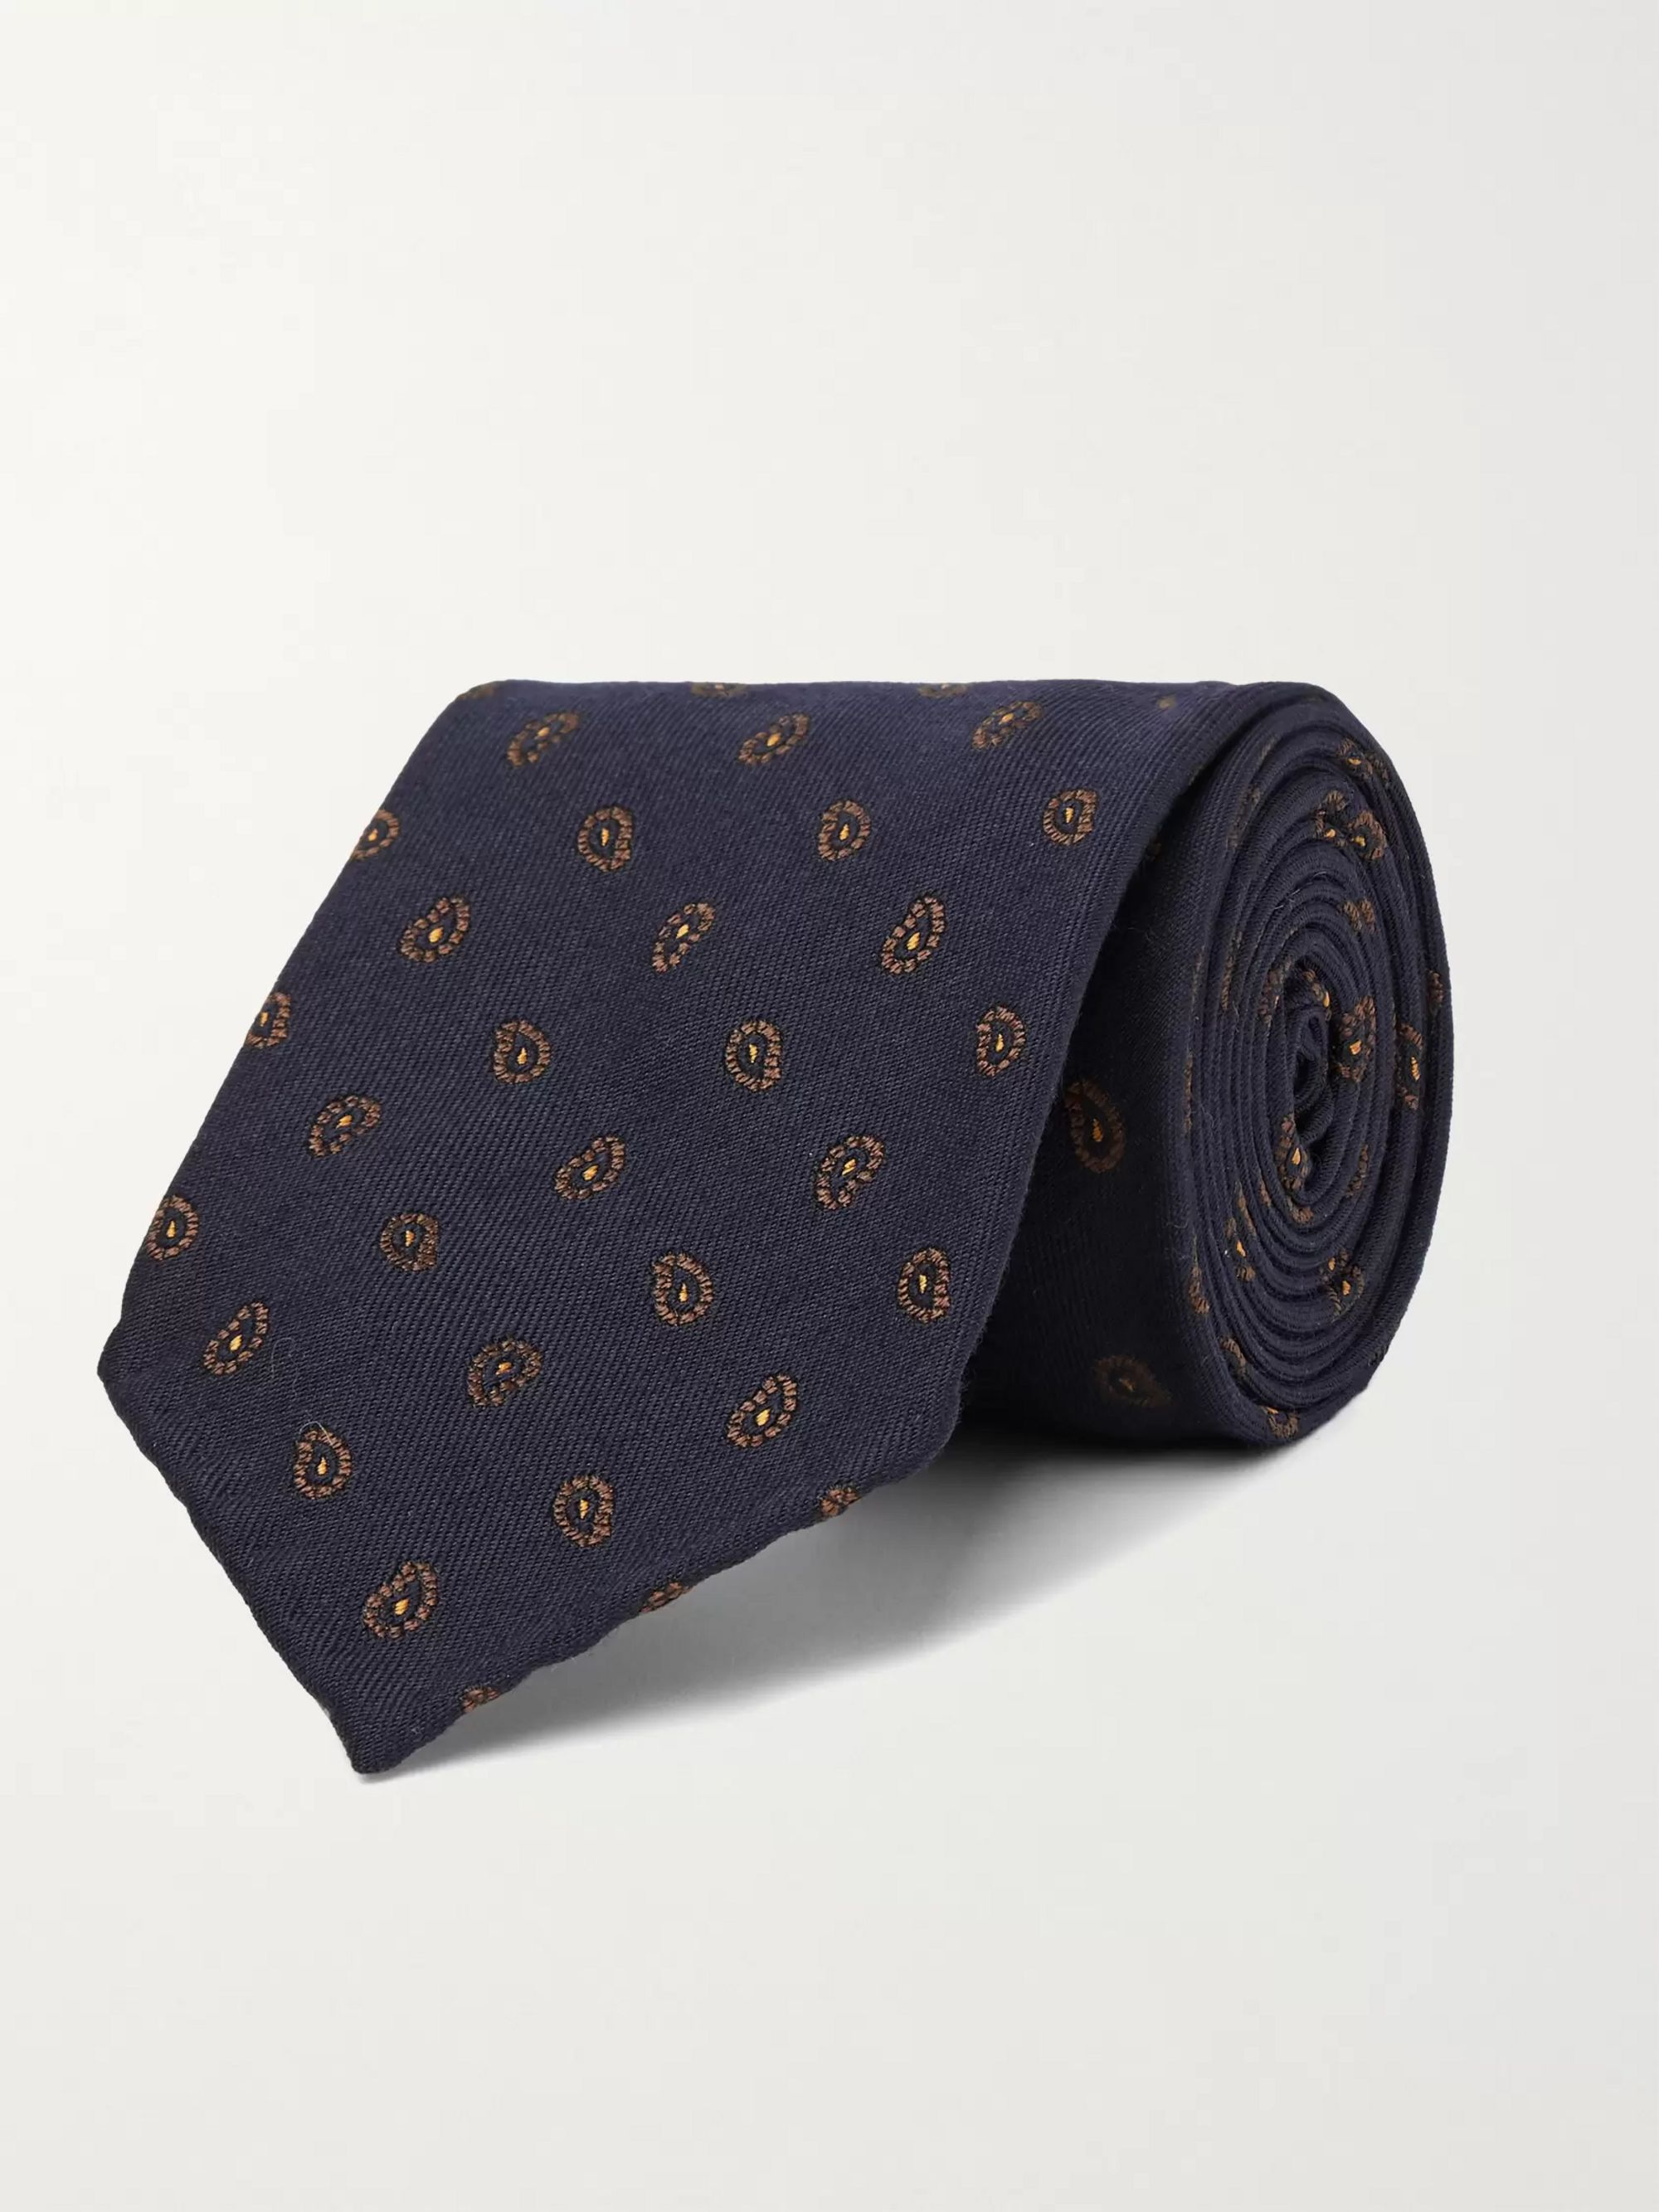 THOM SWEENEY 7.5cm Paisley-Print Virgin Wool and Silk-Blend Tie,Navy